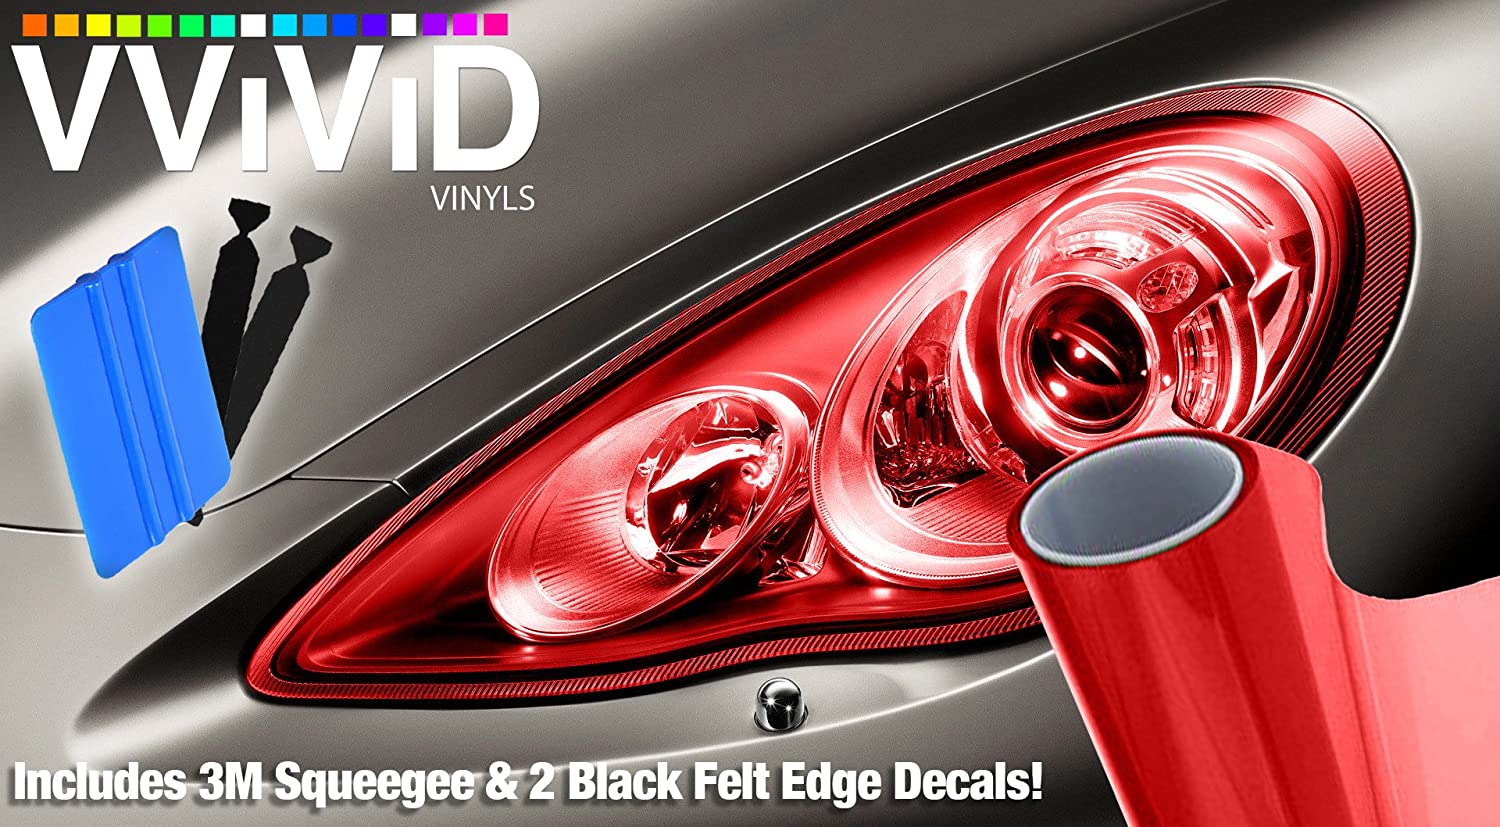 VViViD Extra-Wide Headlight Taillight Vinyl Wet Tint Wrap 16' x 48' Roll Including 3M Blue Squeegee & 2x Black Felt Edge Decals (Green)